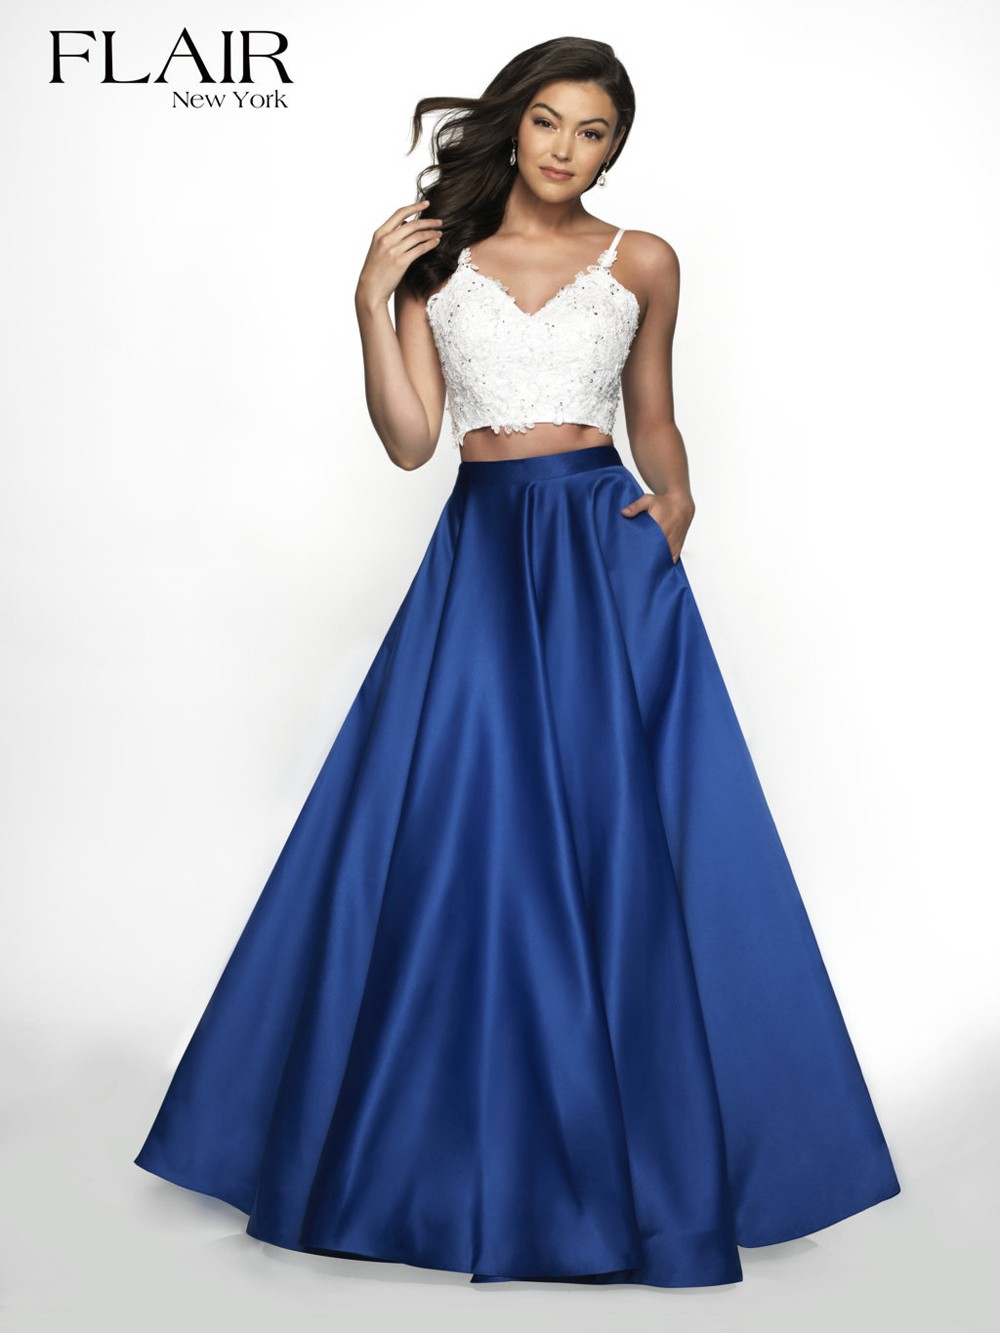 3d9b8465c83f Tap to expand · Flair NY - Dress Style 19002 ...